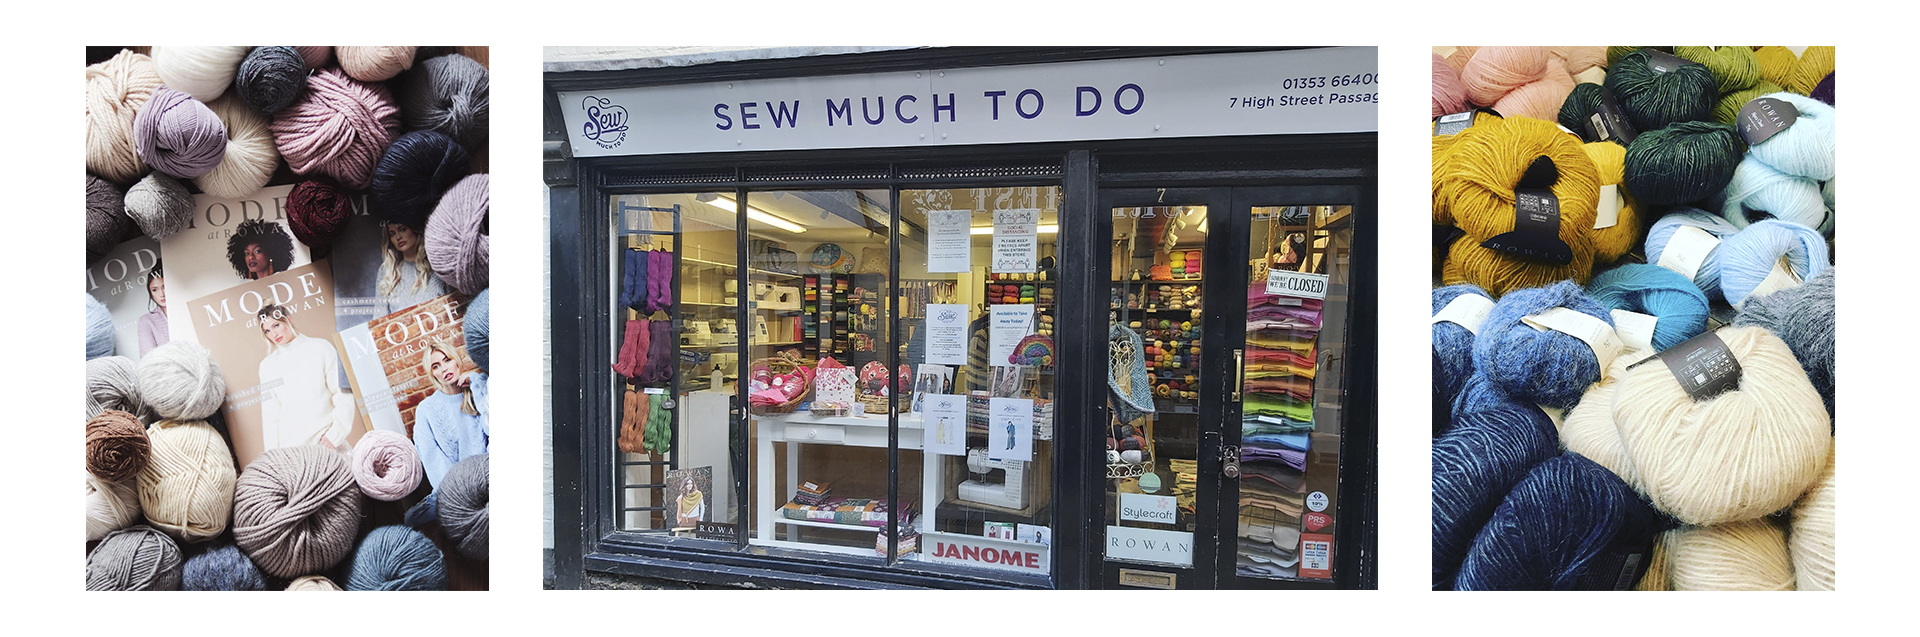 Based in the heart of the beautiful cathedral city of Bury St Edmunds, we're a small independent business offering a gorgeous selection of yarn and fabrics, along with a variety of haberdashery and crafting supplies. We have a sister shop in Ely and also ship worldwide via our website.